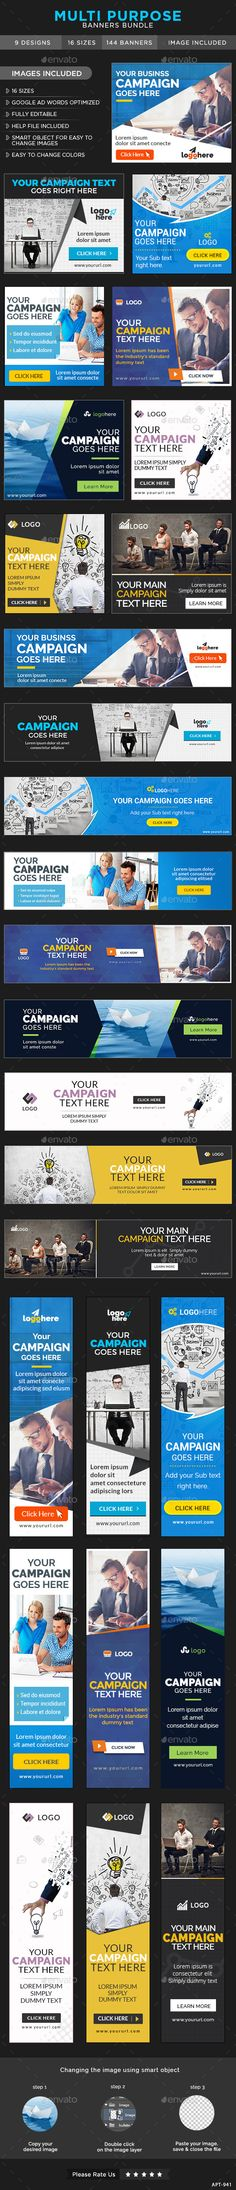 Multi Purpose Web Banners Bundle - 9 Sets Template PSD #ads #design Download: http://graphicriver.net/item/multi-purpose-banners-bundle-9-sets/13303434?ref=ksioks